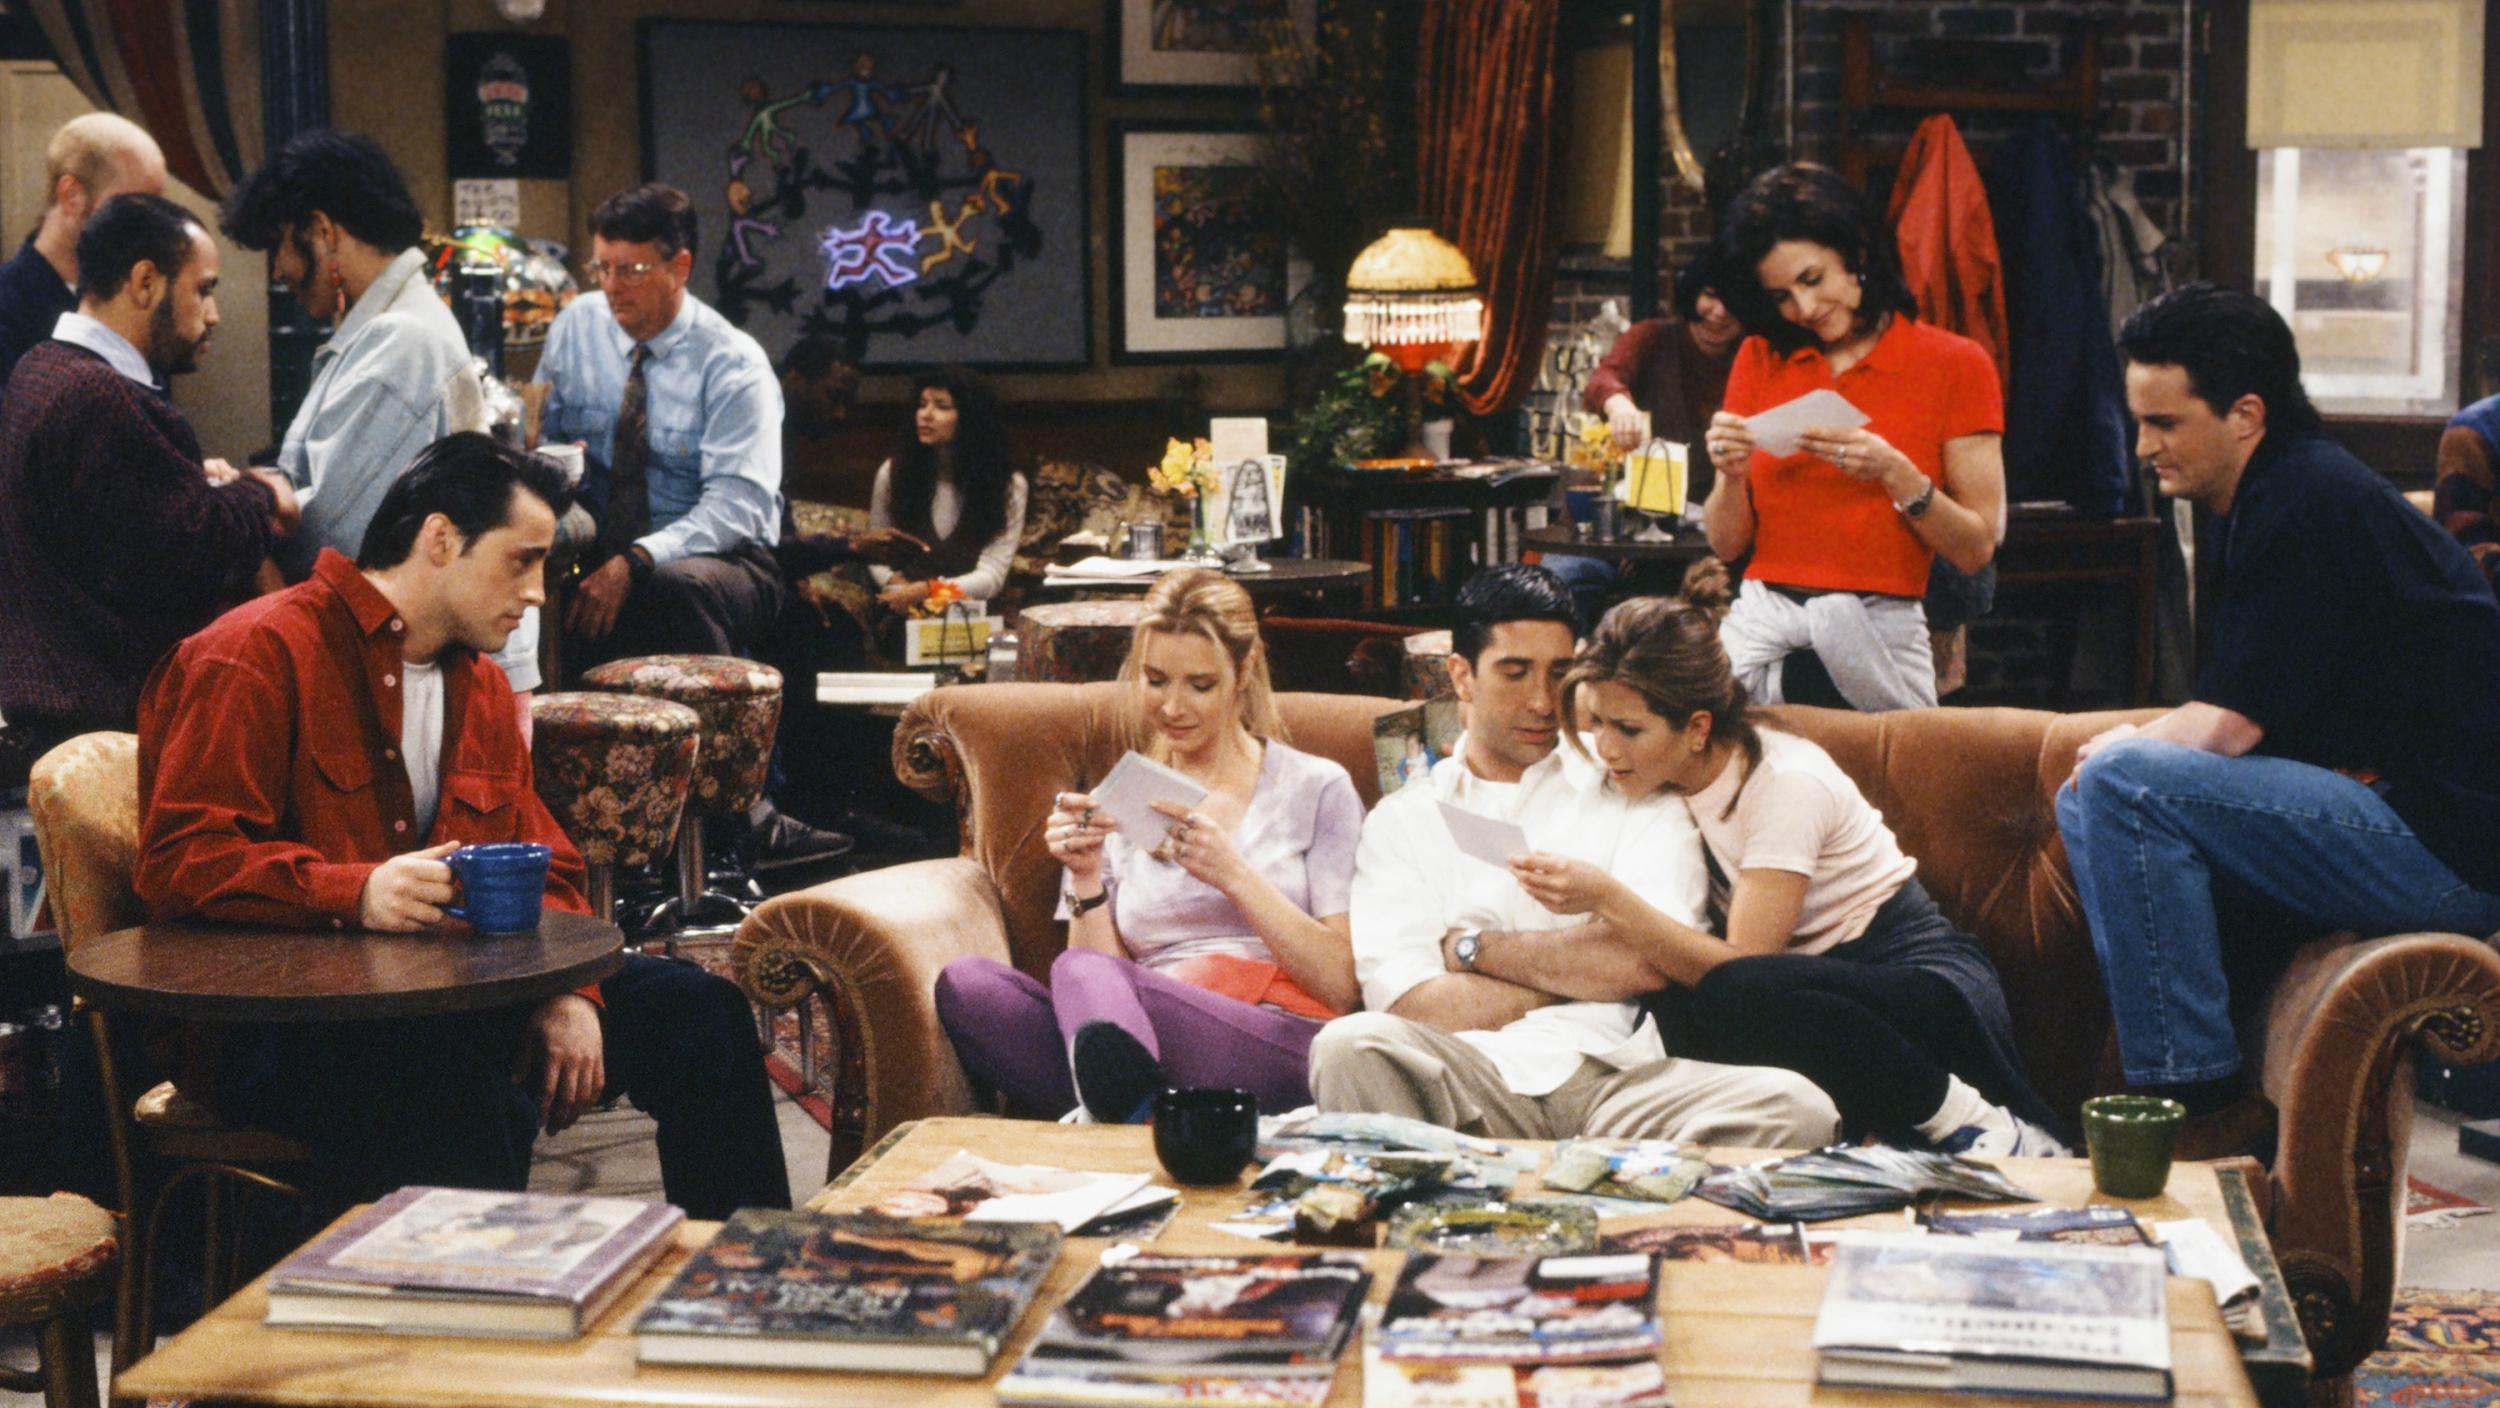 Jennifer Aniston says there won't be a Friends reunion